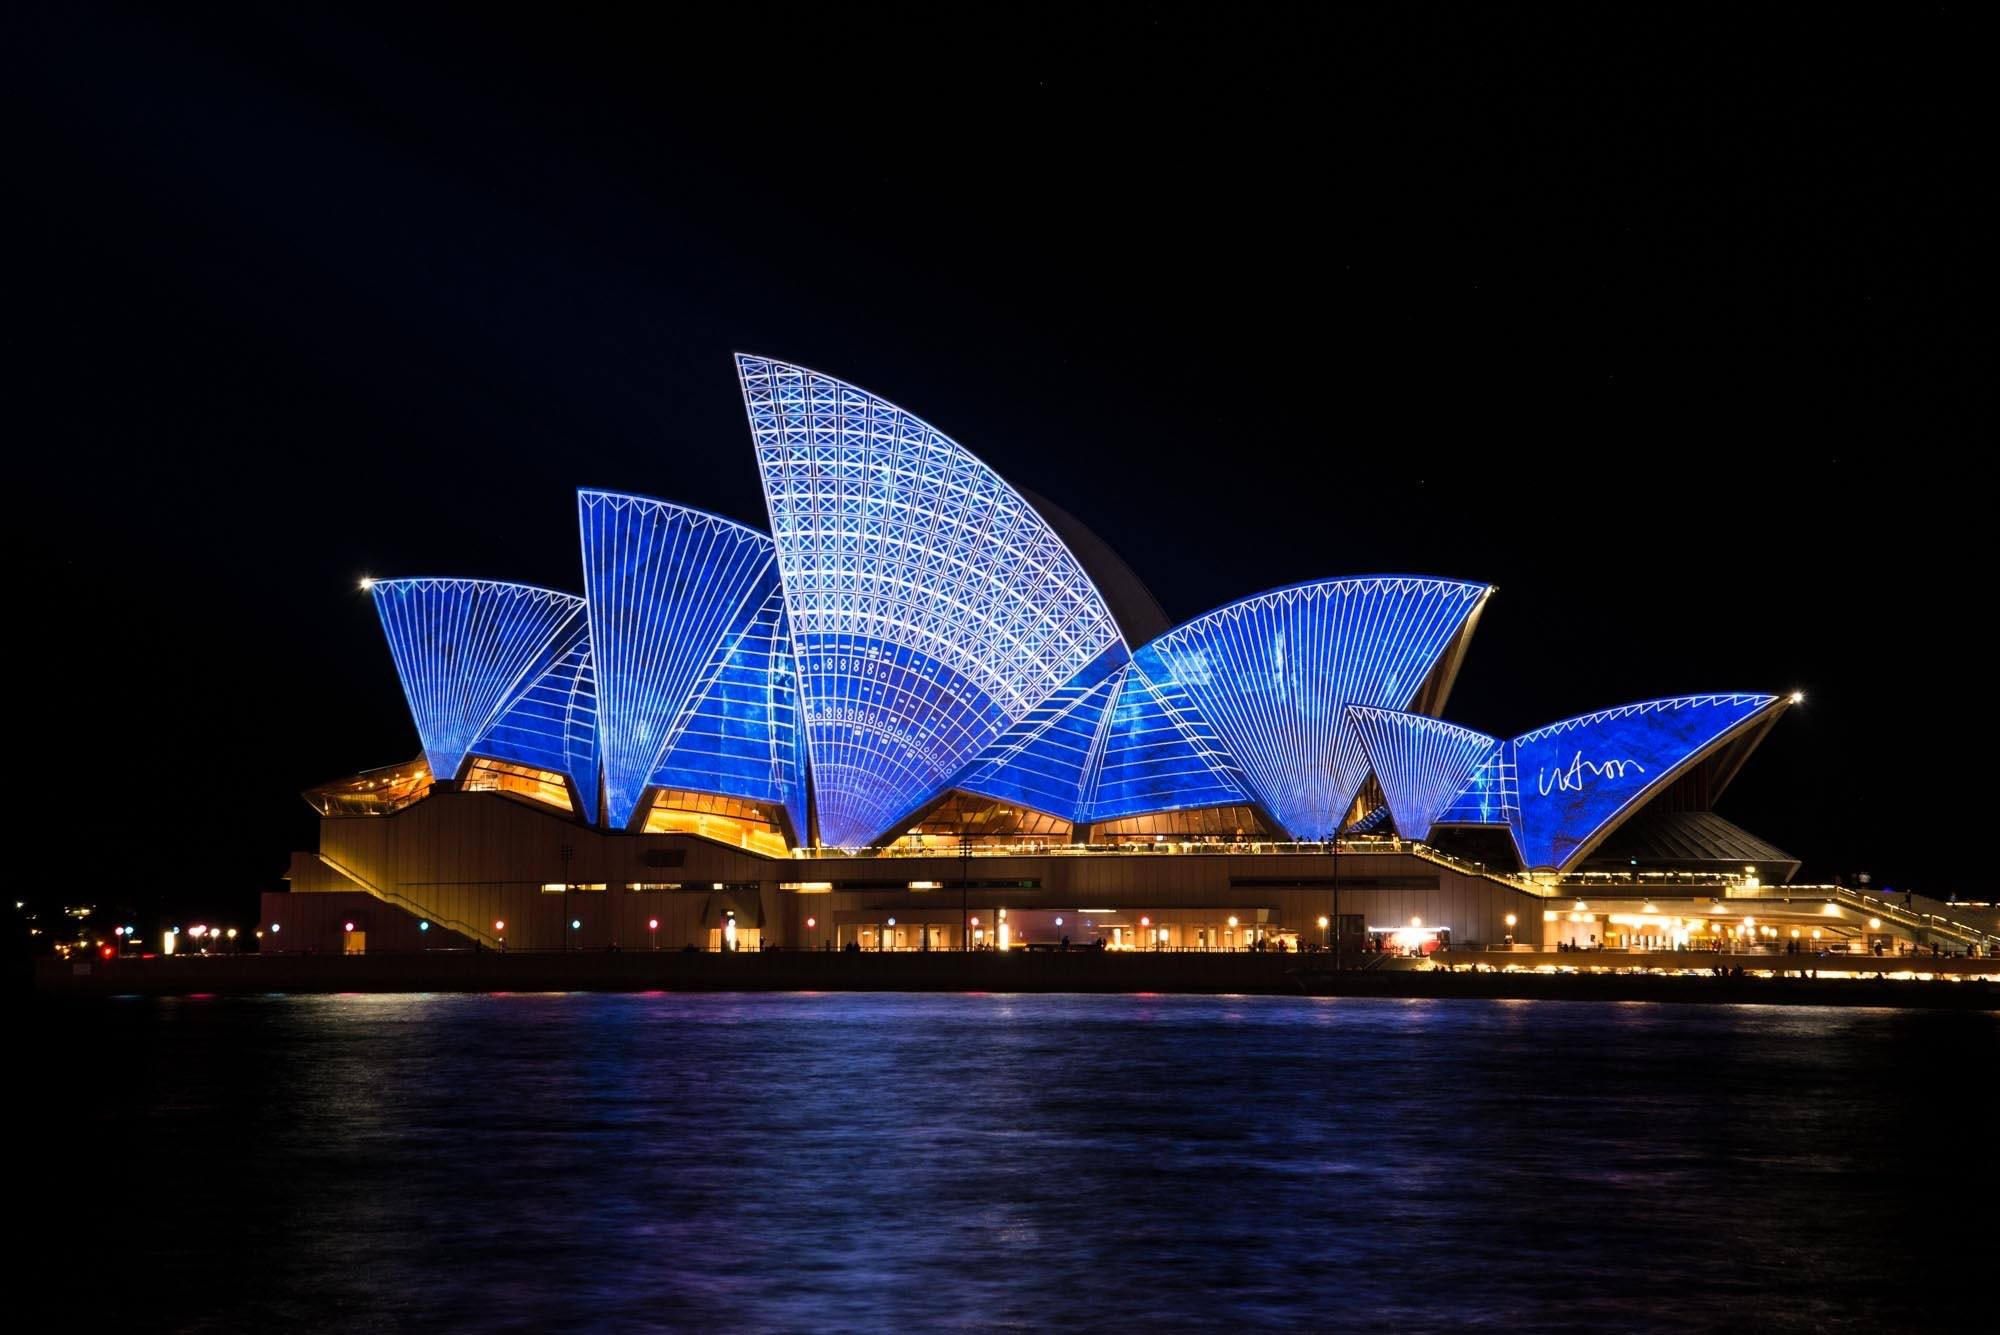 Blue Lighted Sydney Opera House during Nighttime, Architecture, Australia, Building, Lights, HQ Photo